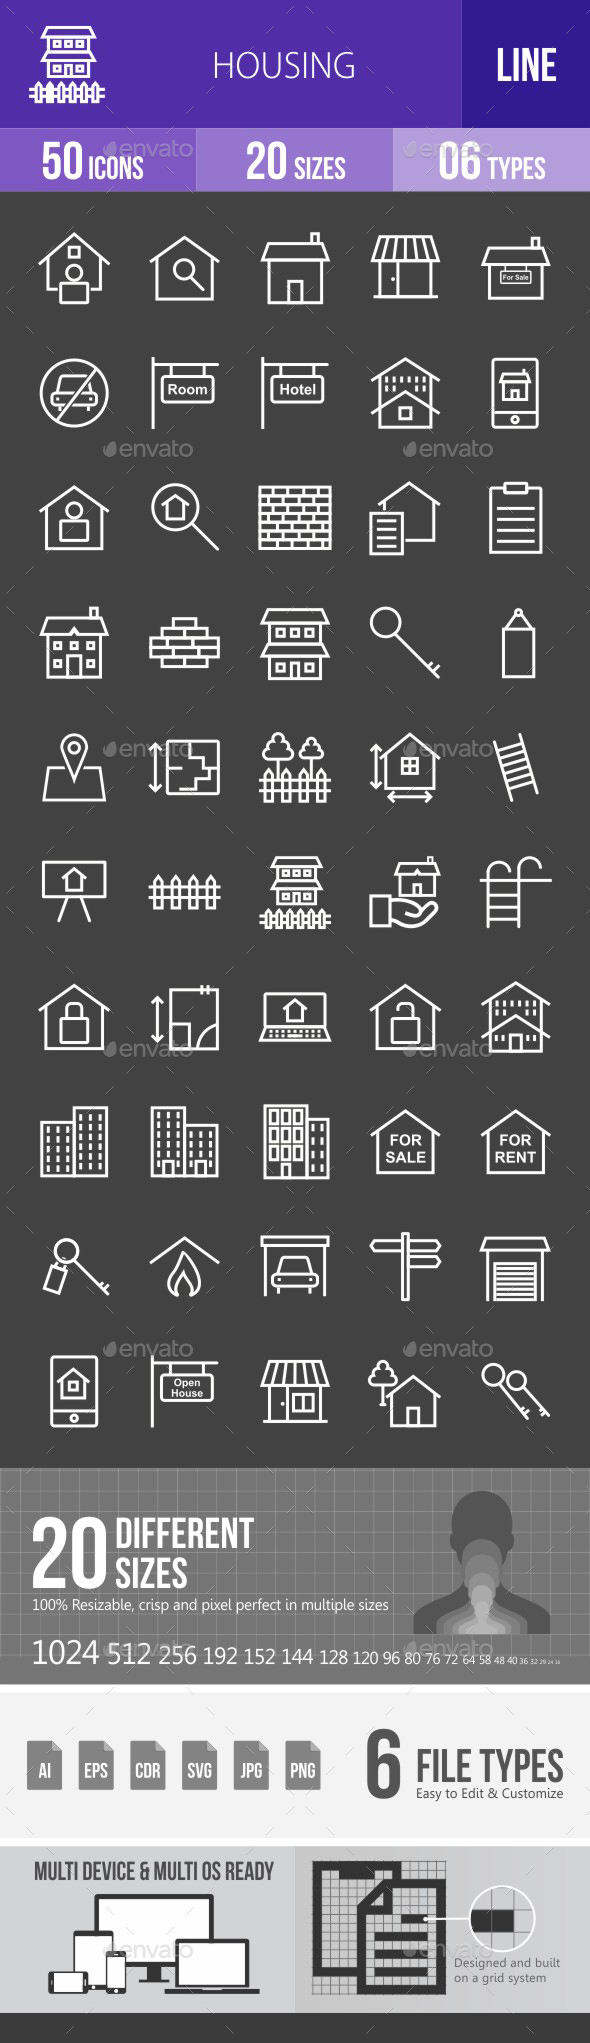 Housing Line Inverted Icons - Icons